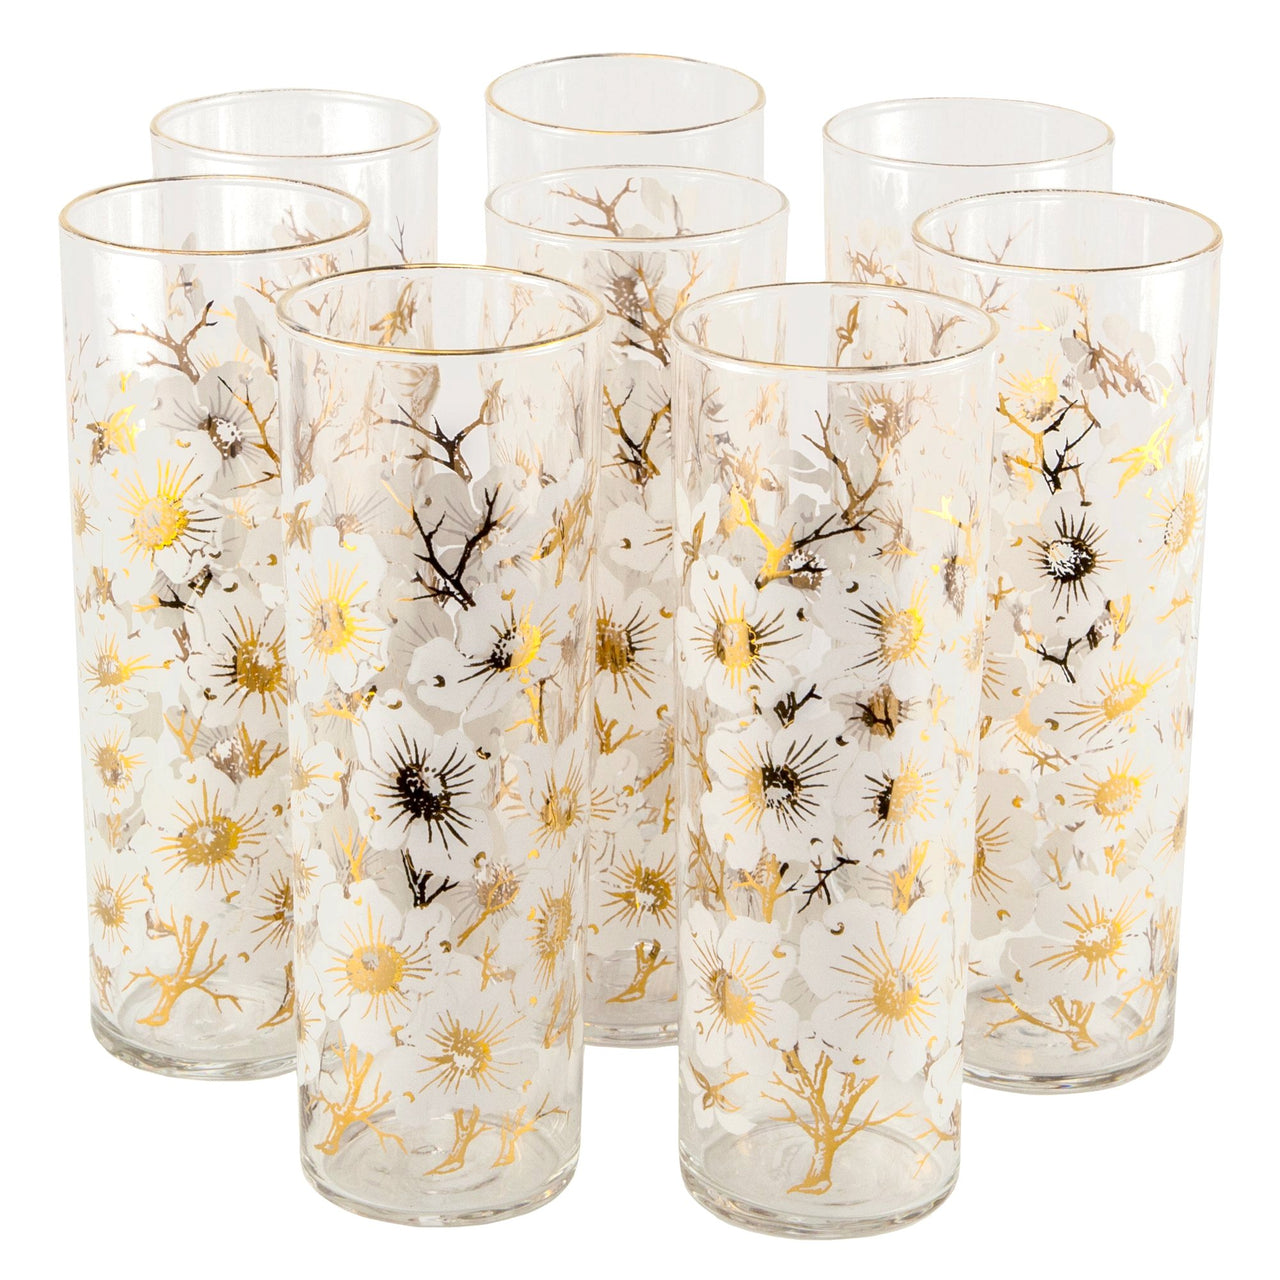 White & Gold Dogwood Collins Glasses | The Hour Vintage